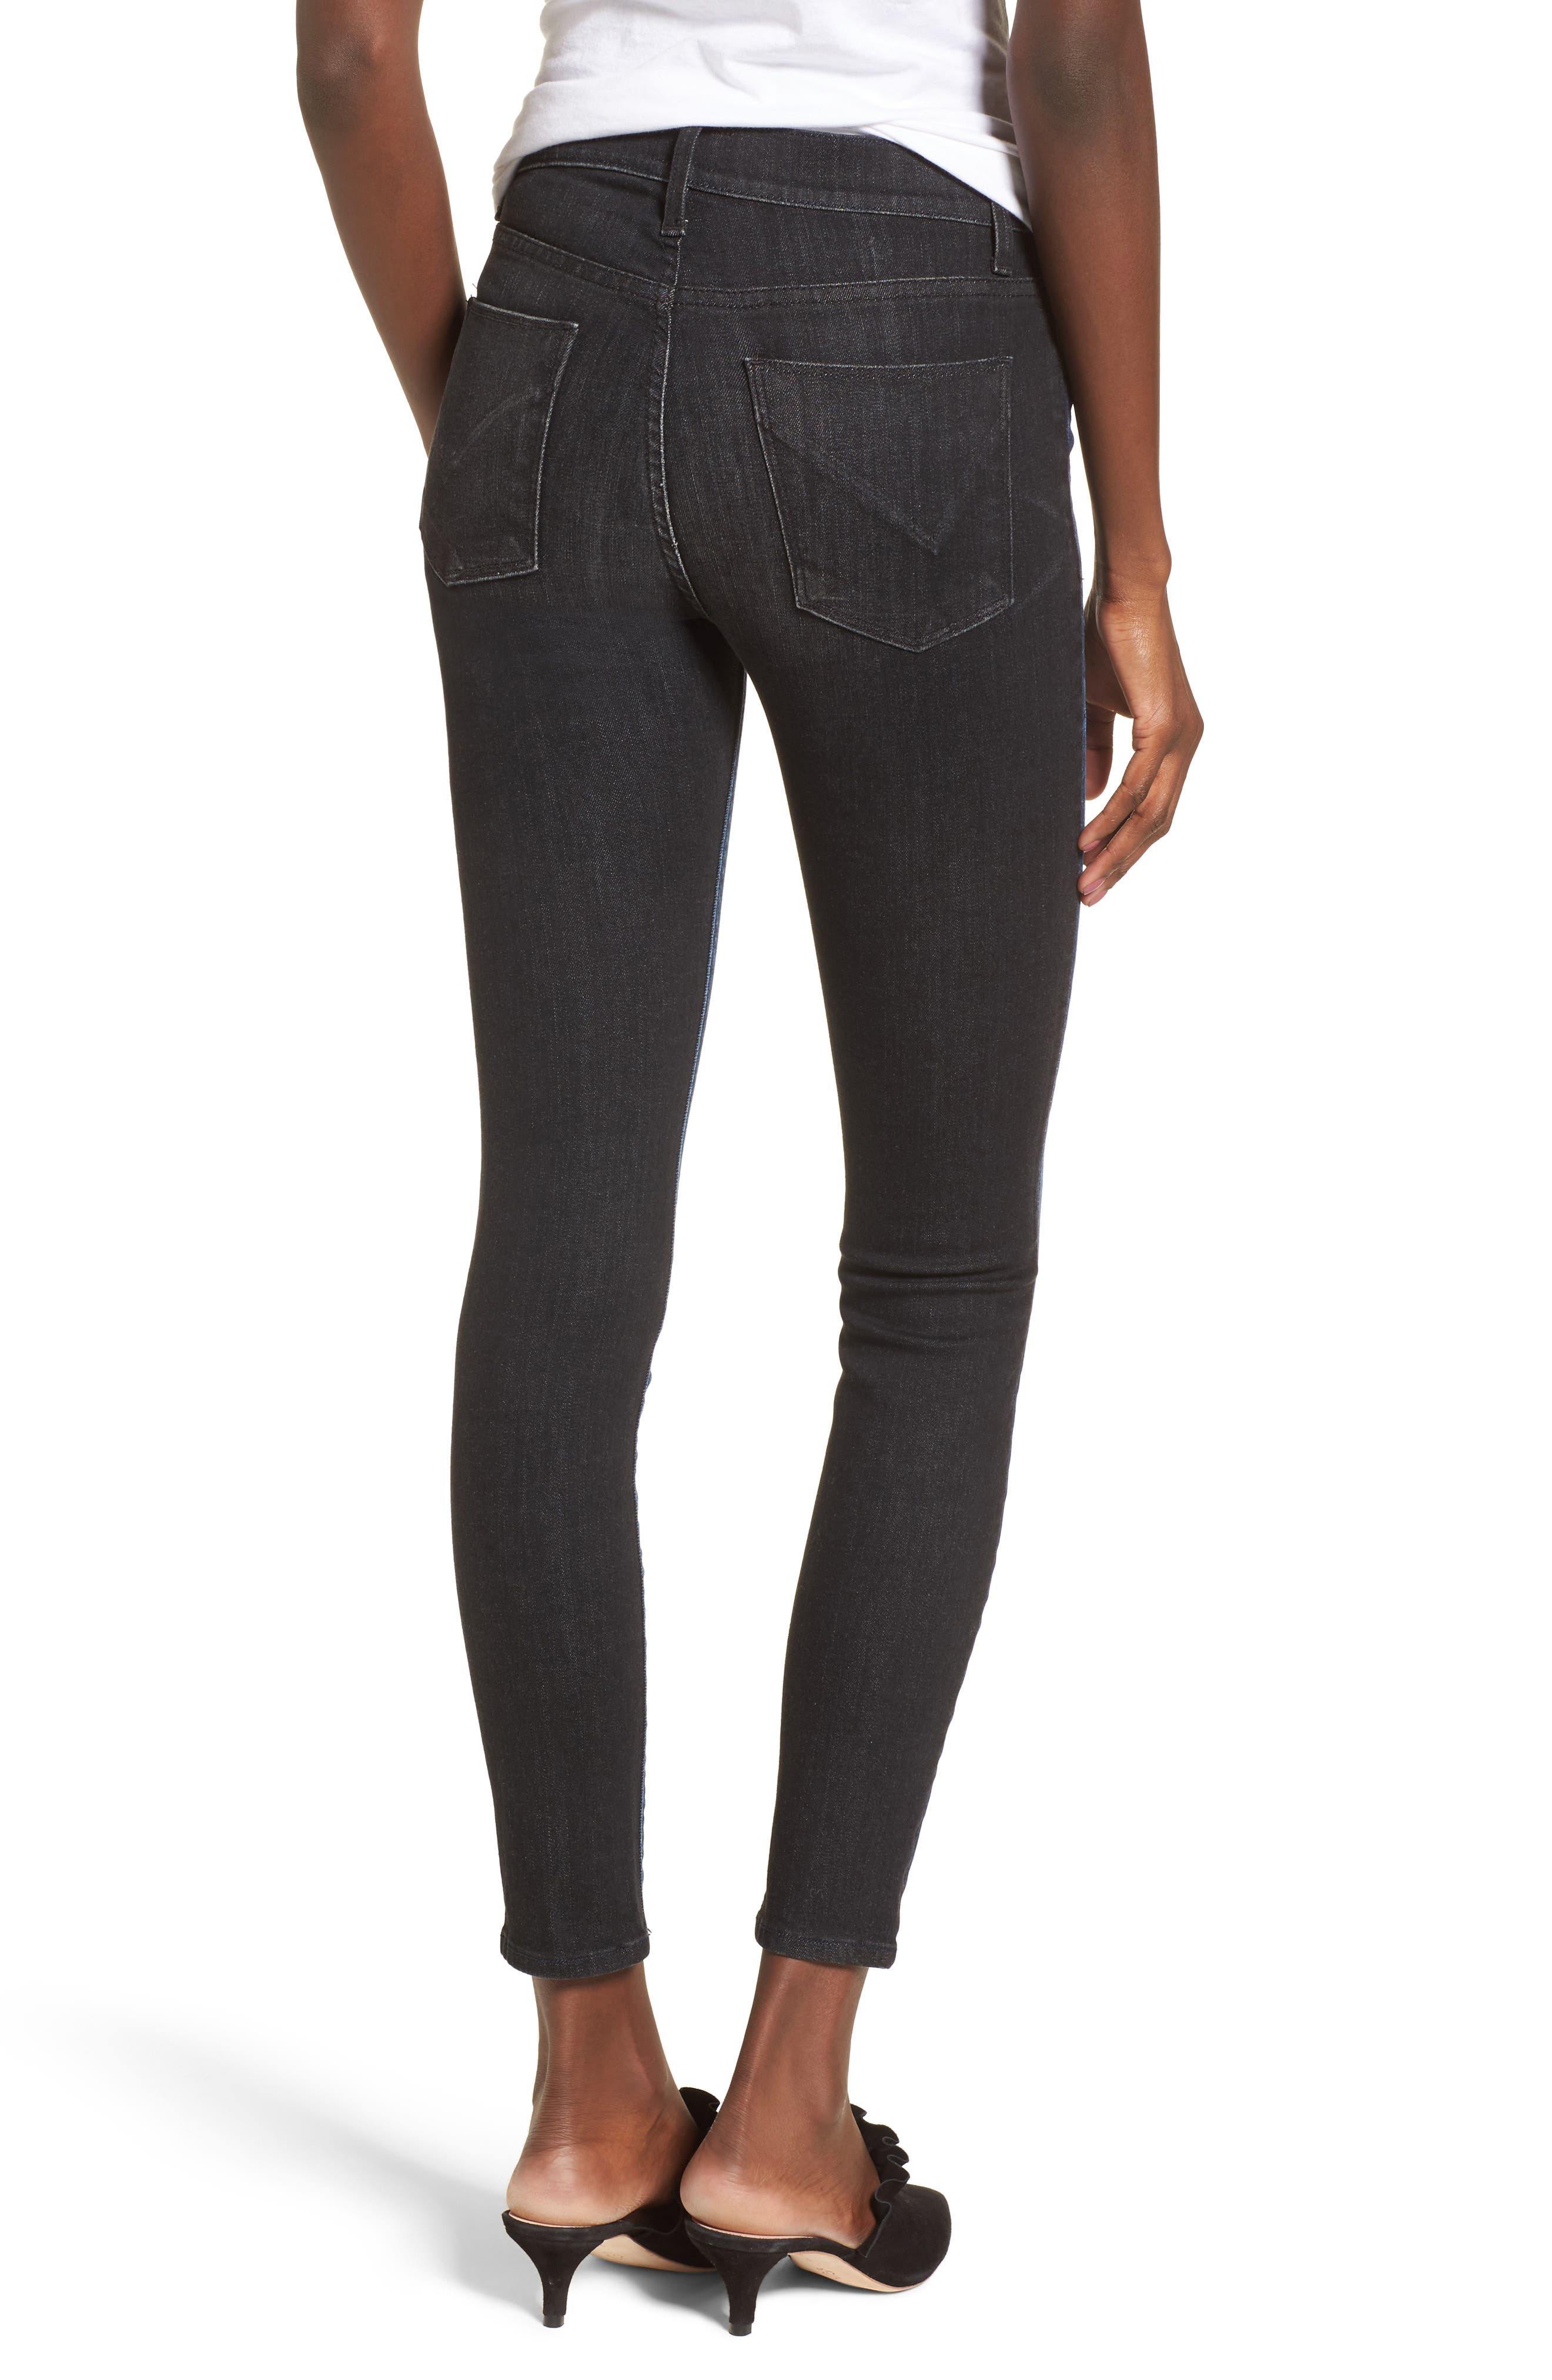 Barbara High Waist Ankle Skinny Jeans,                             Alternate thumbnail 2, color,                             006